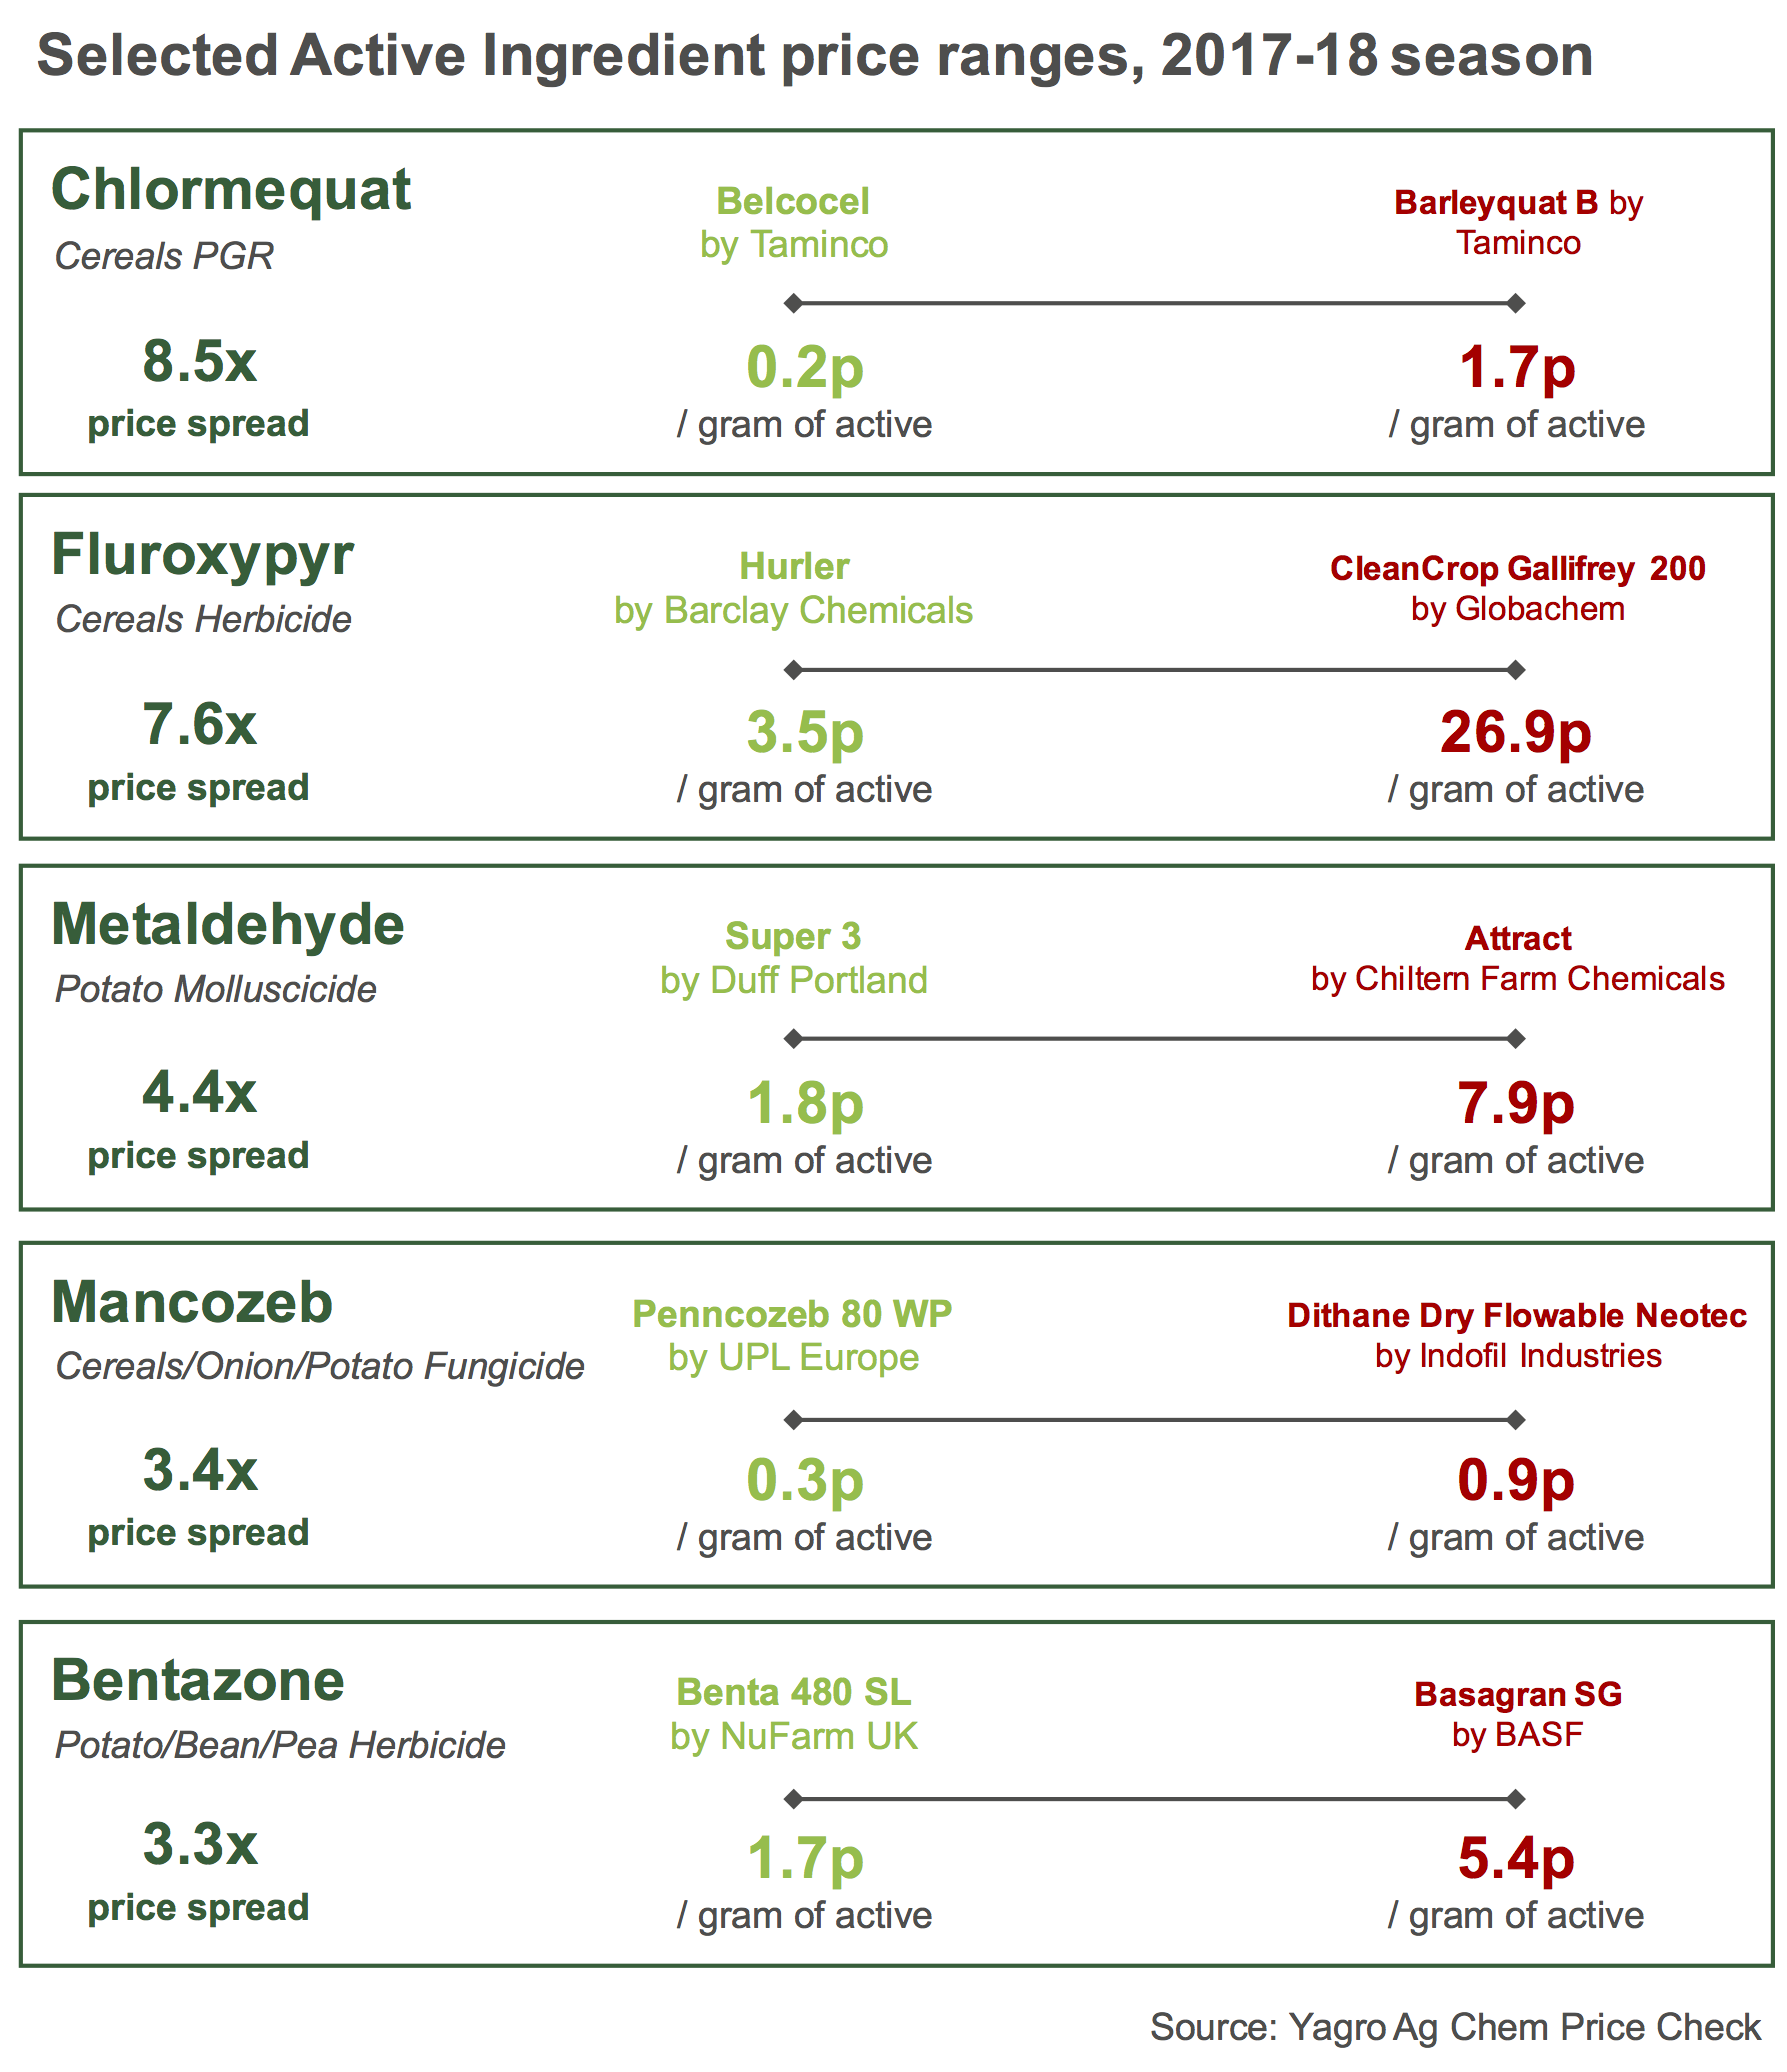 At last: transparency on Active Ingredient prices in UK agrochemicals